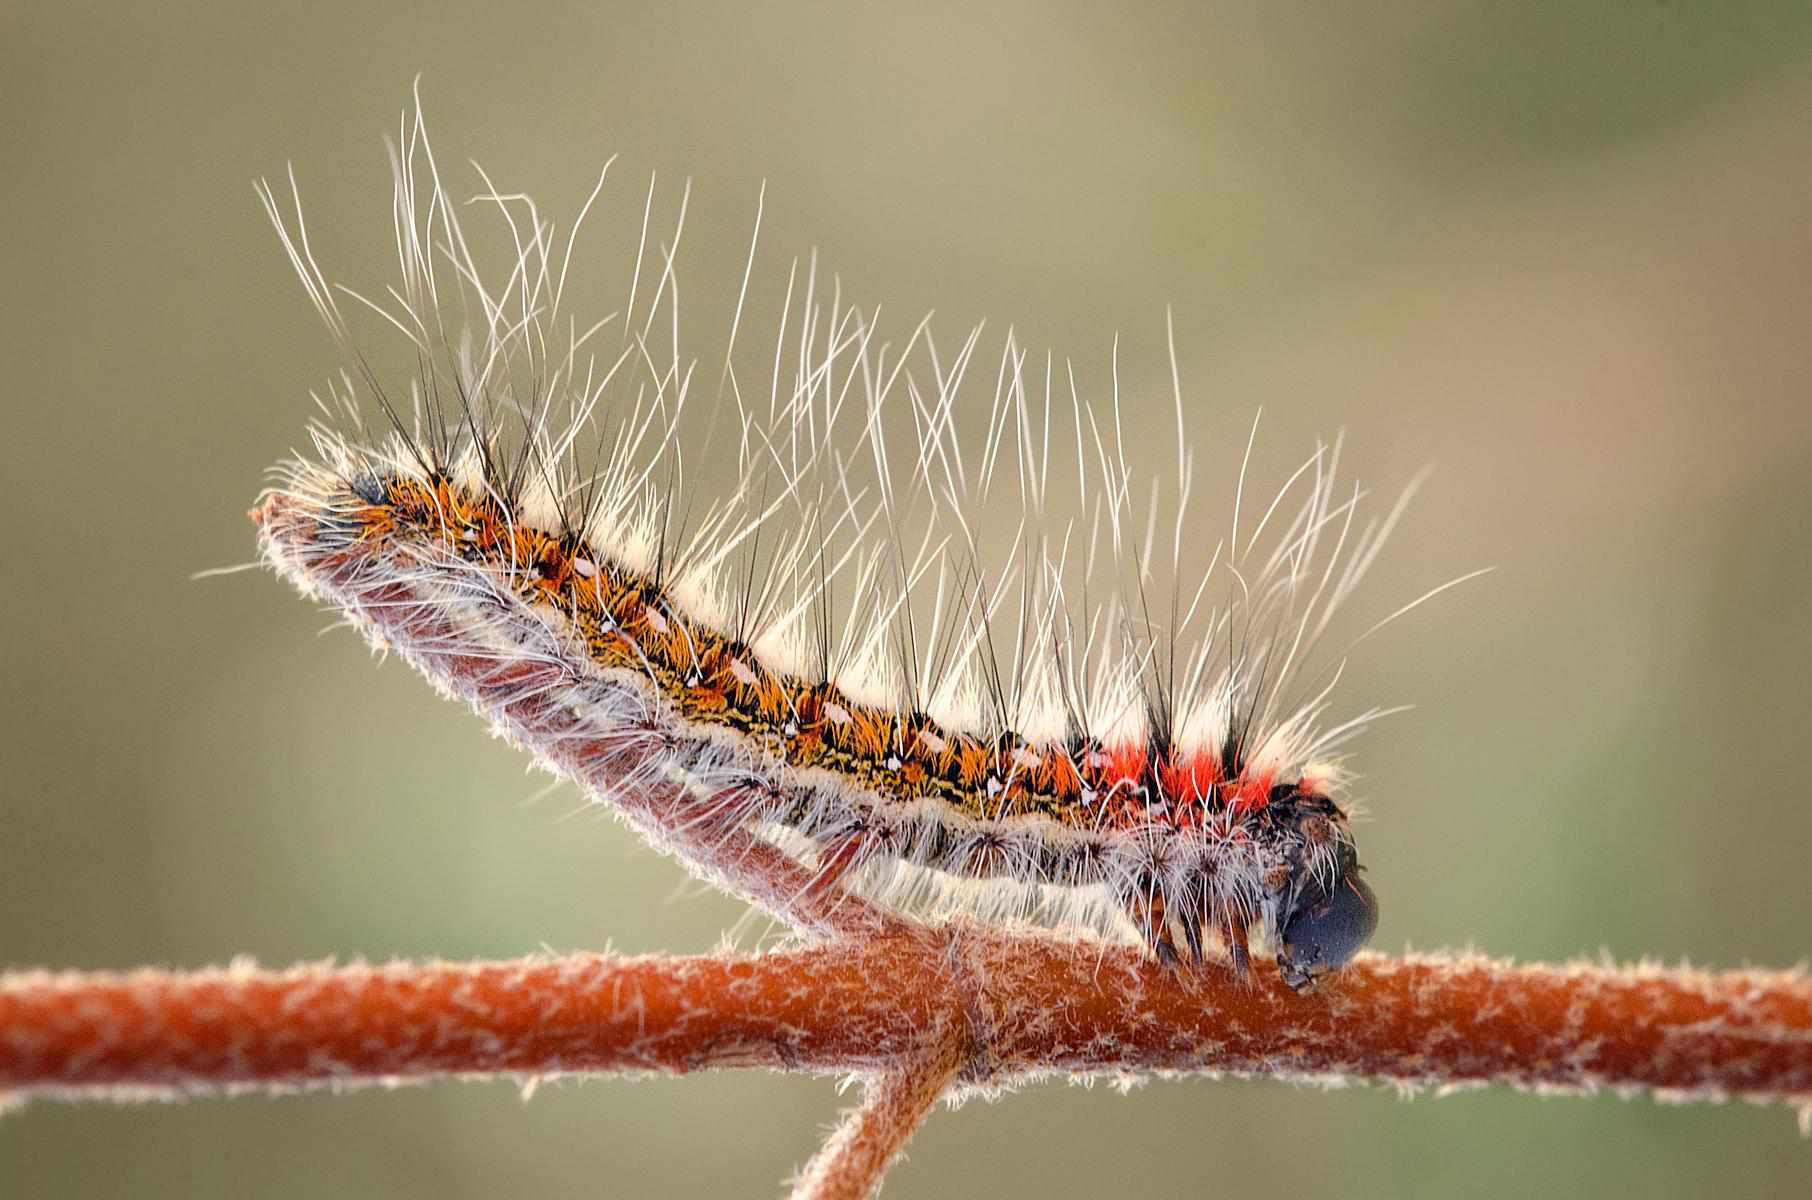 Insects and arachnids as spiritual totems buycottarizona Image collections